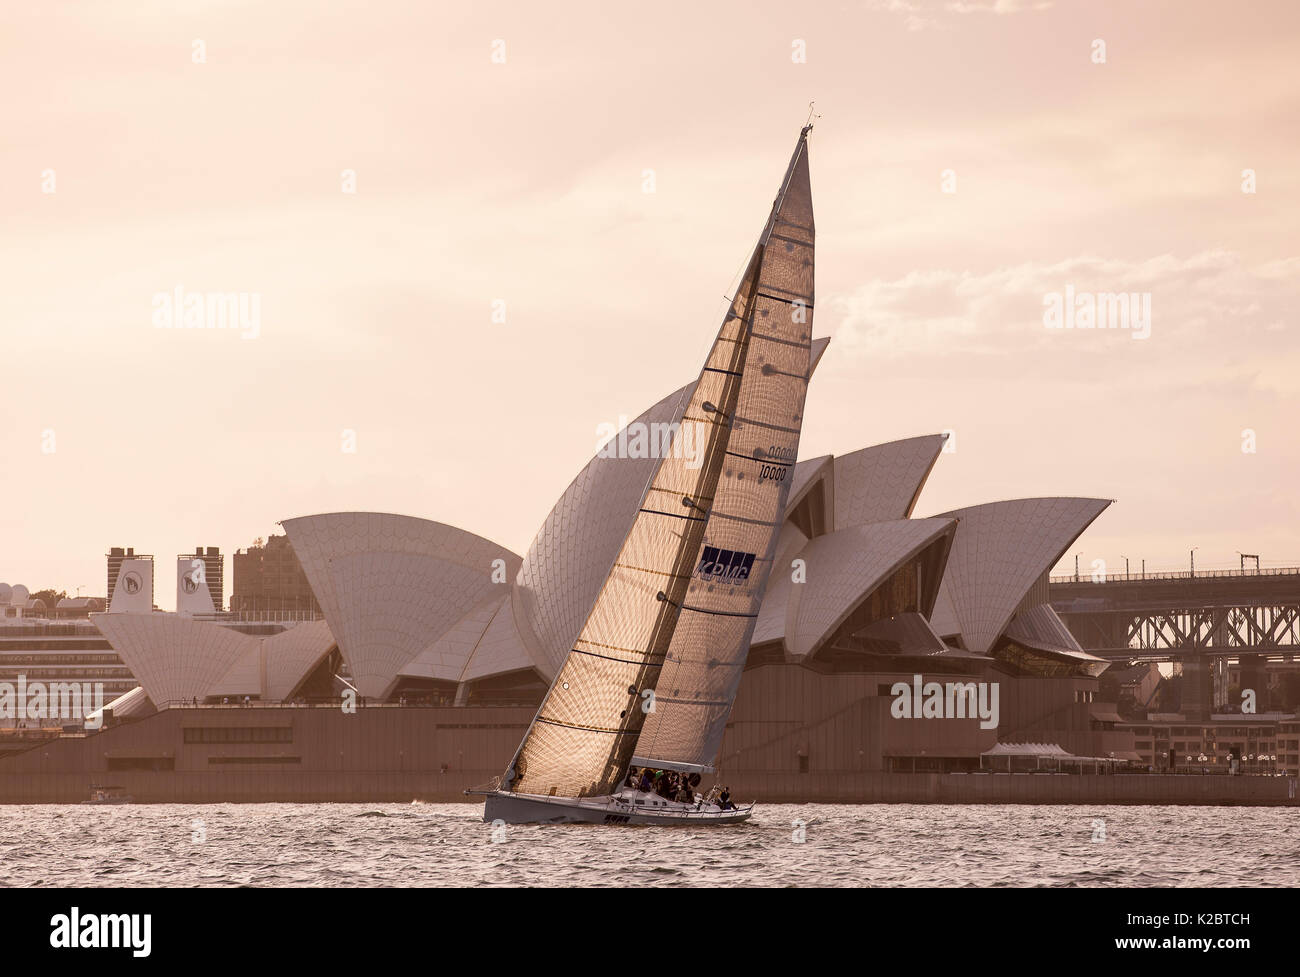 Yacht sailing past the Sydney Opera House at dusk, November 2012. All non-editorial uses must be cleared individually. - Stock Image